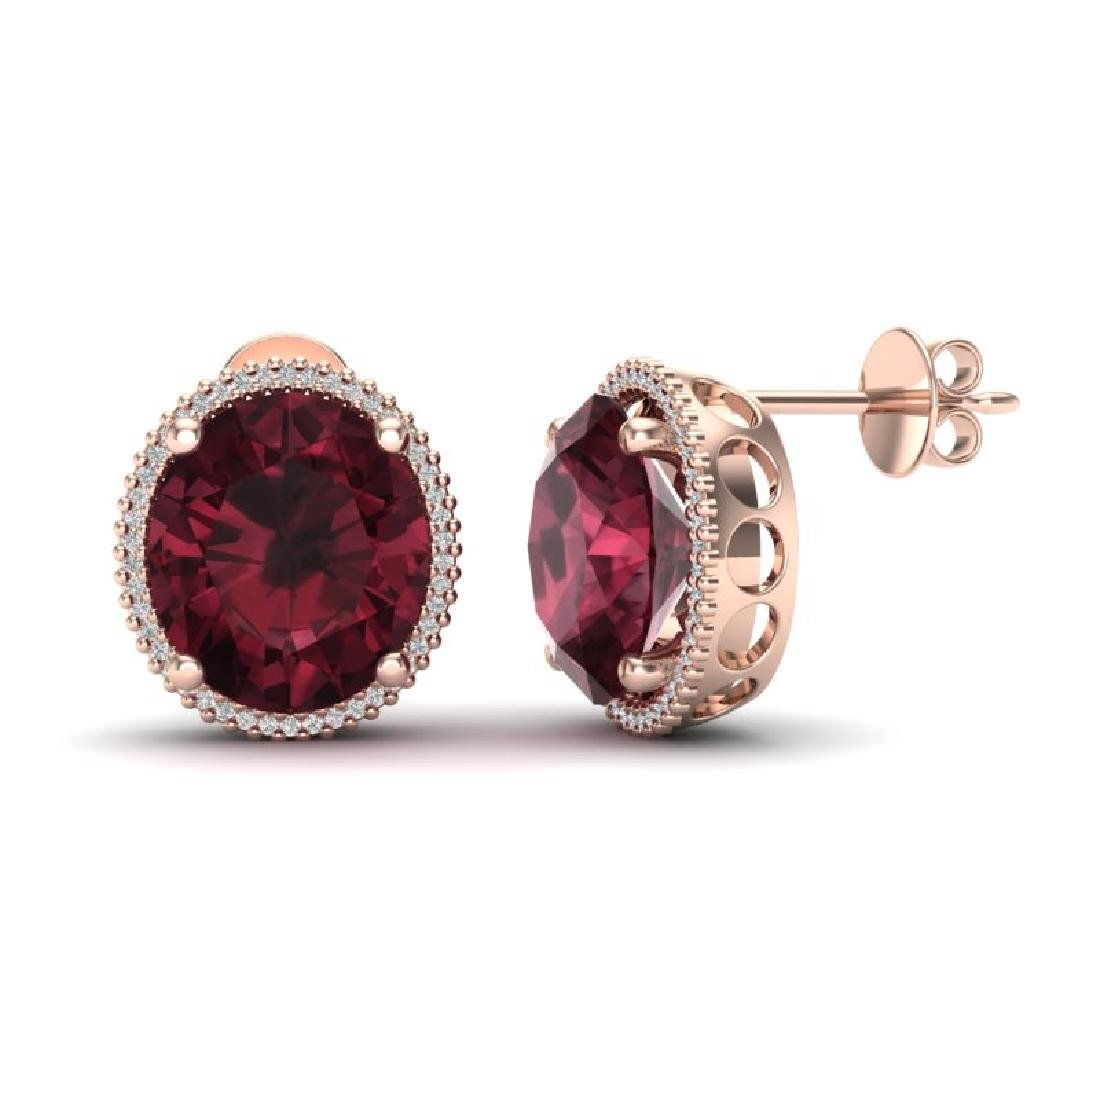 20 CTW Garnet & Micro Pave VS/SI Diamond Halo Earrings - 2